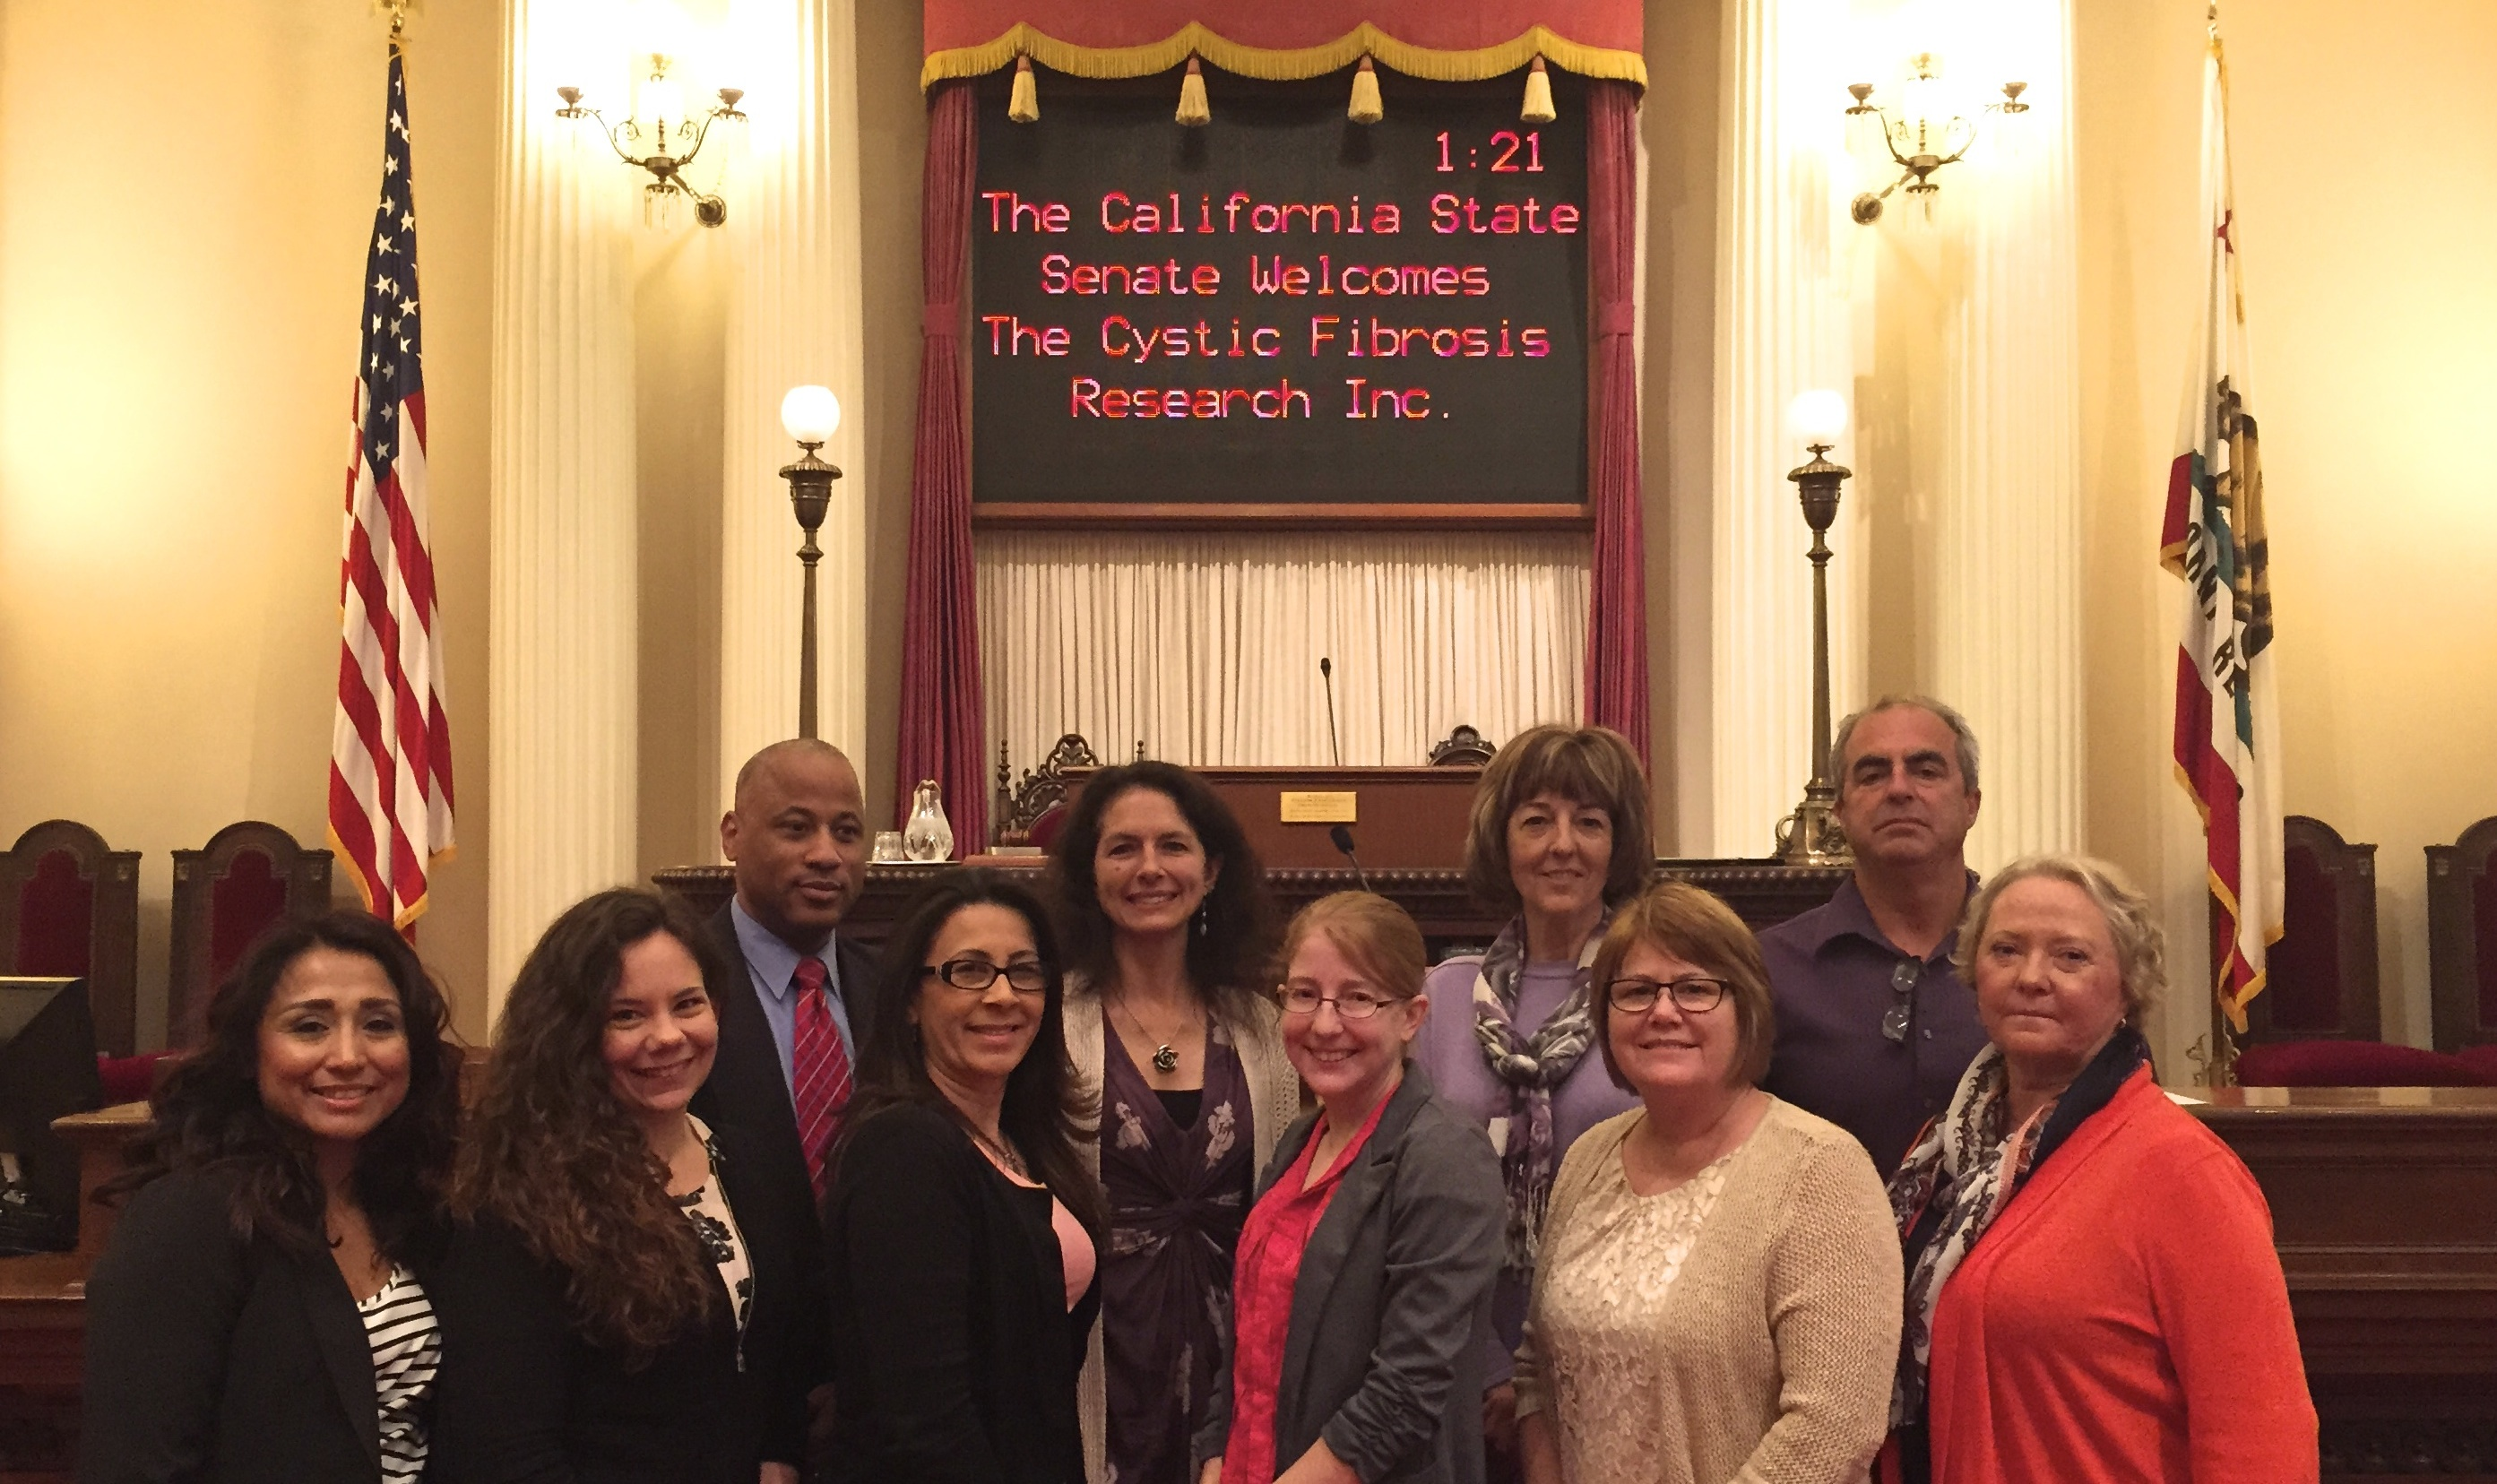 CFRI leaders and community members at the California State Senate